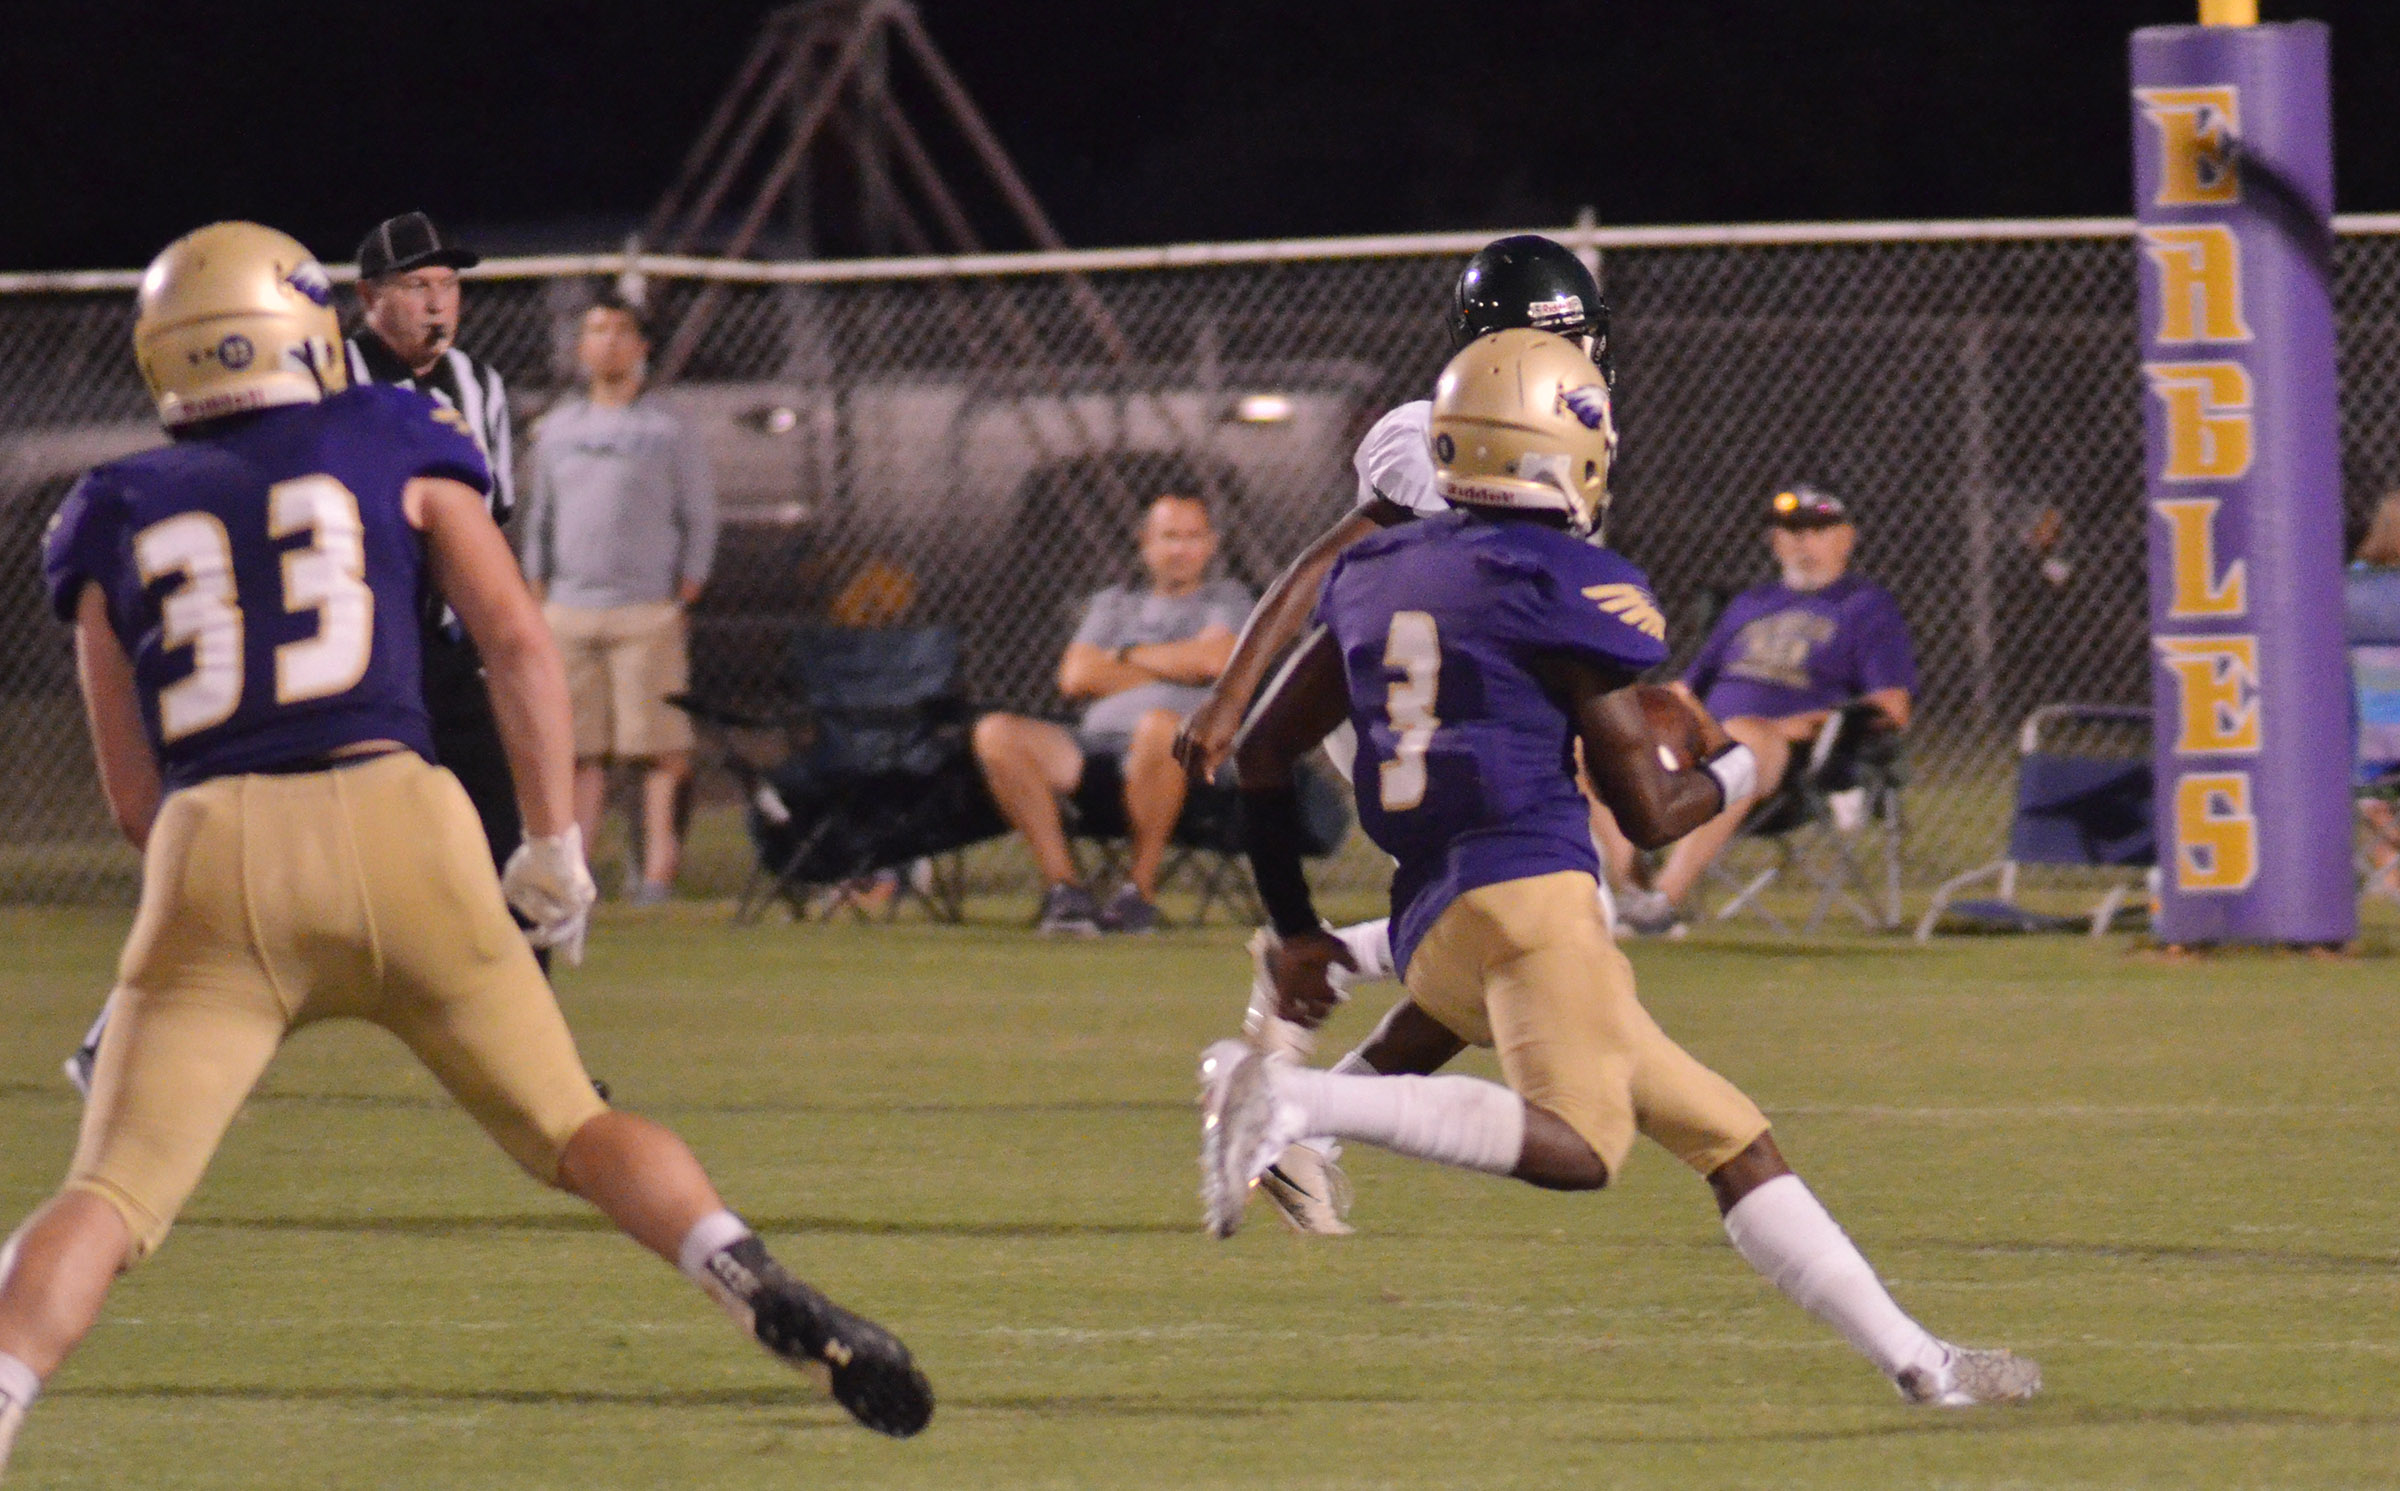 CHS sophomore Malachi Corley runs for a touchdown.